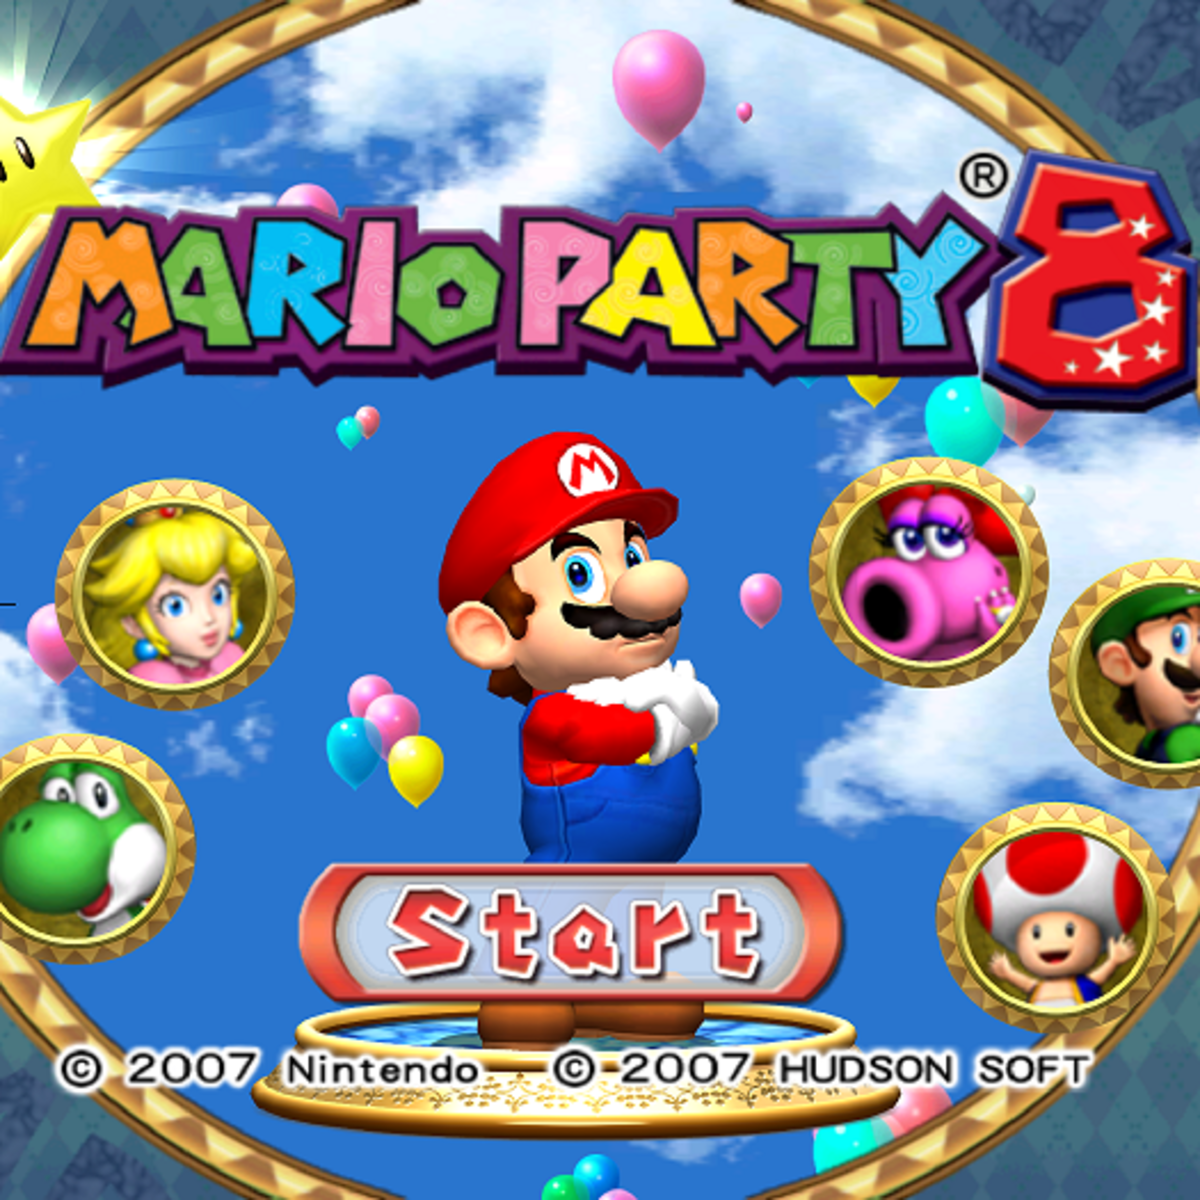 Mario Party 8 Title Screen